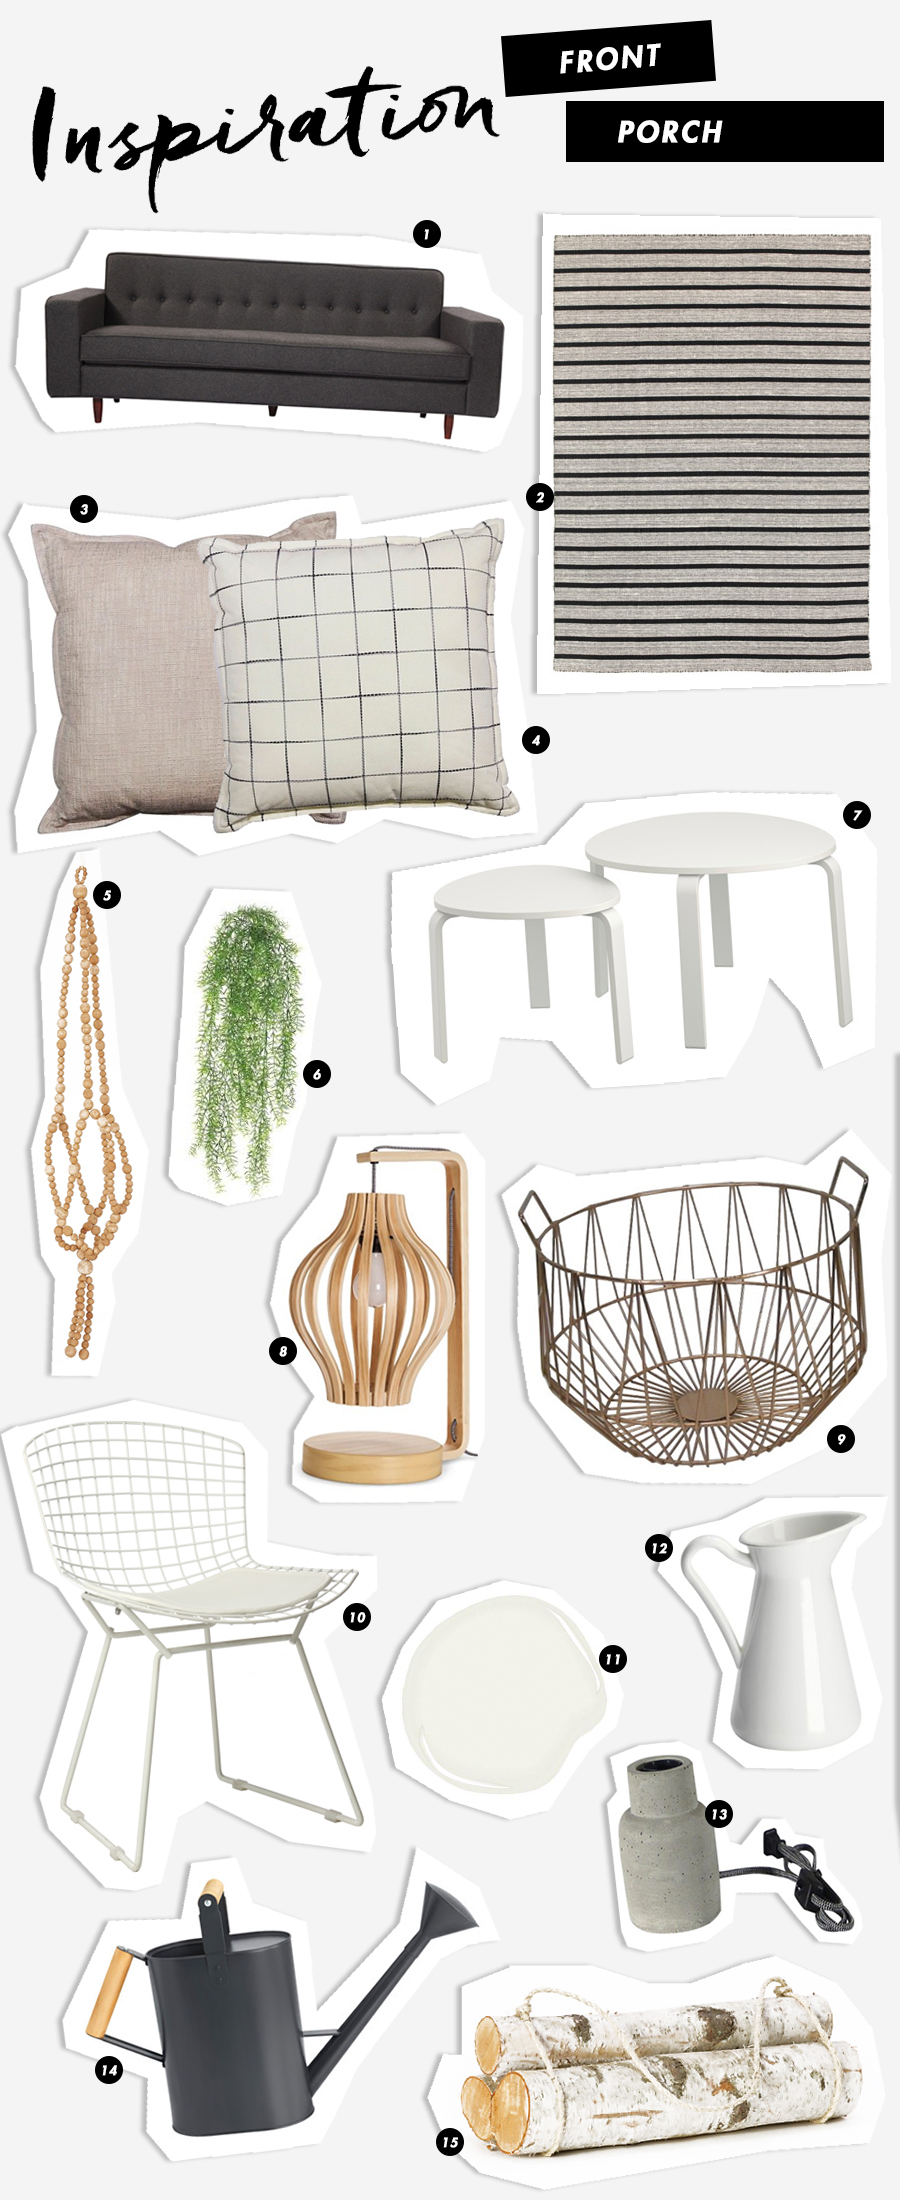 Grey & Blush Inspiration for the Front Porch